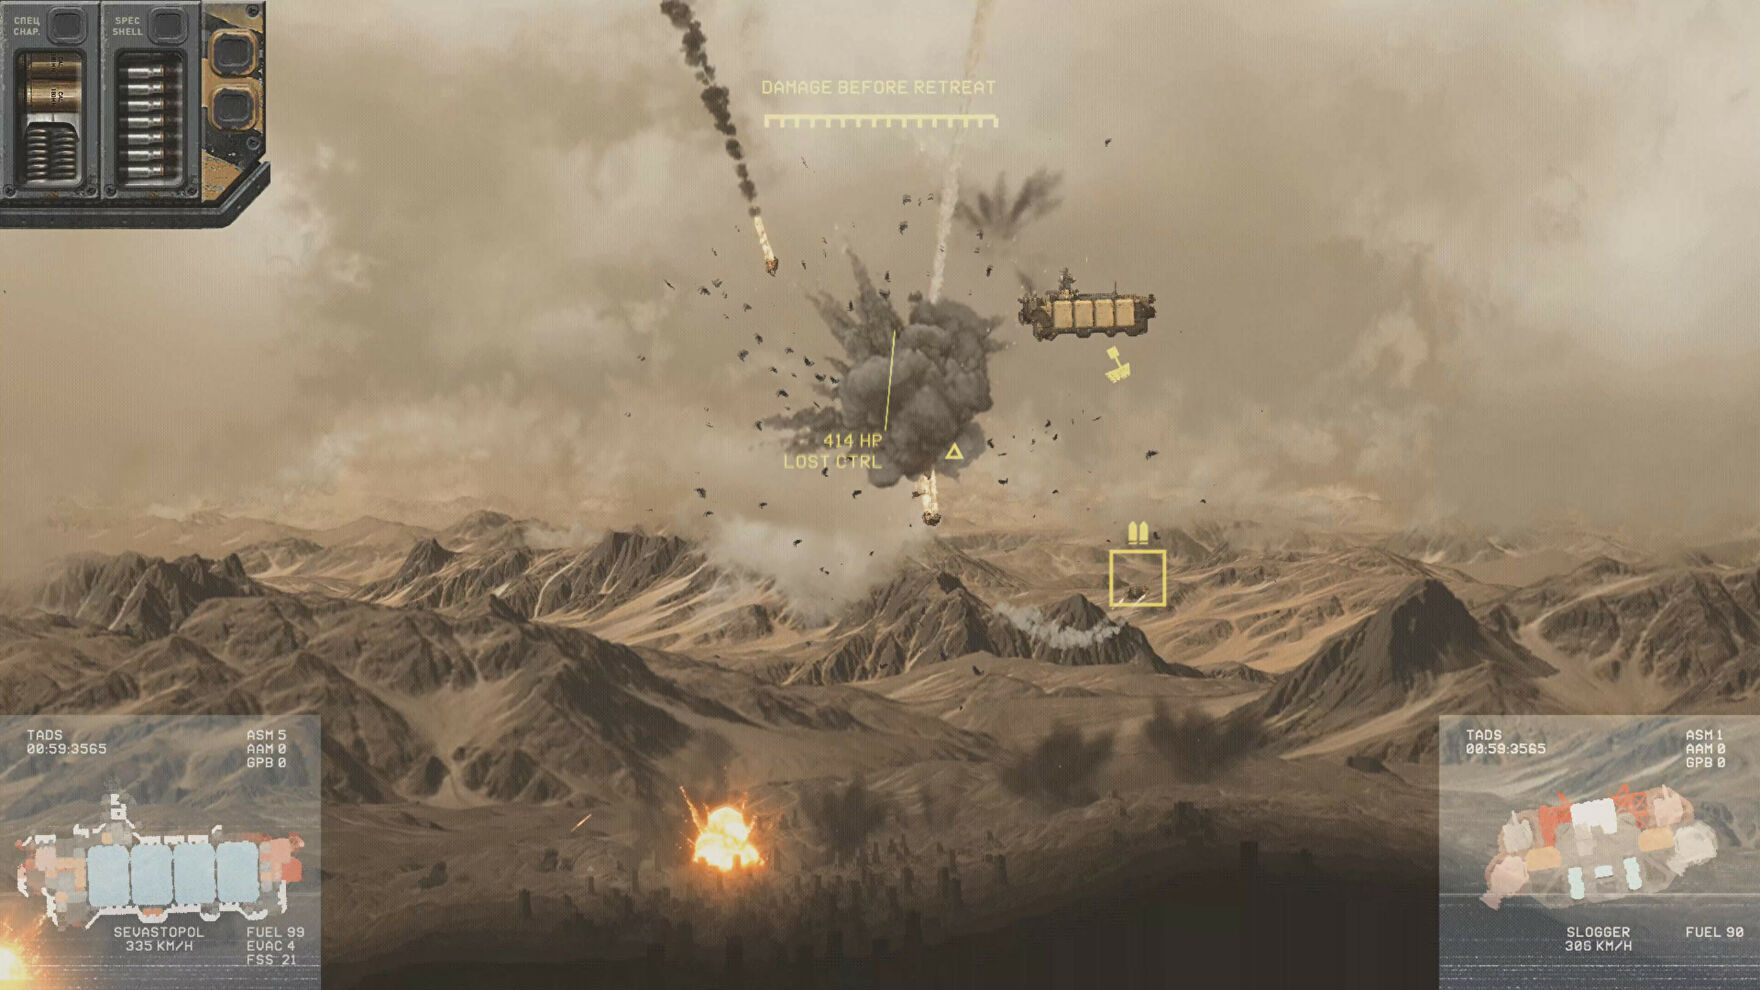 HighFleet is a futuristic action-strategy game about giant airborne ships | Rock Paper Shotgun